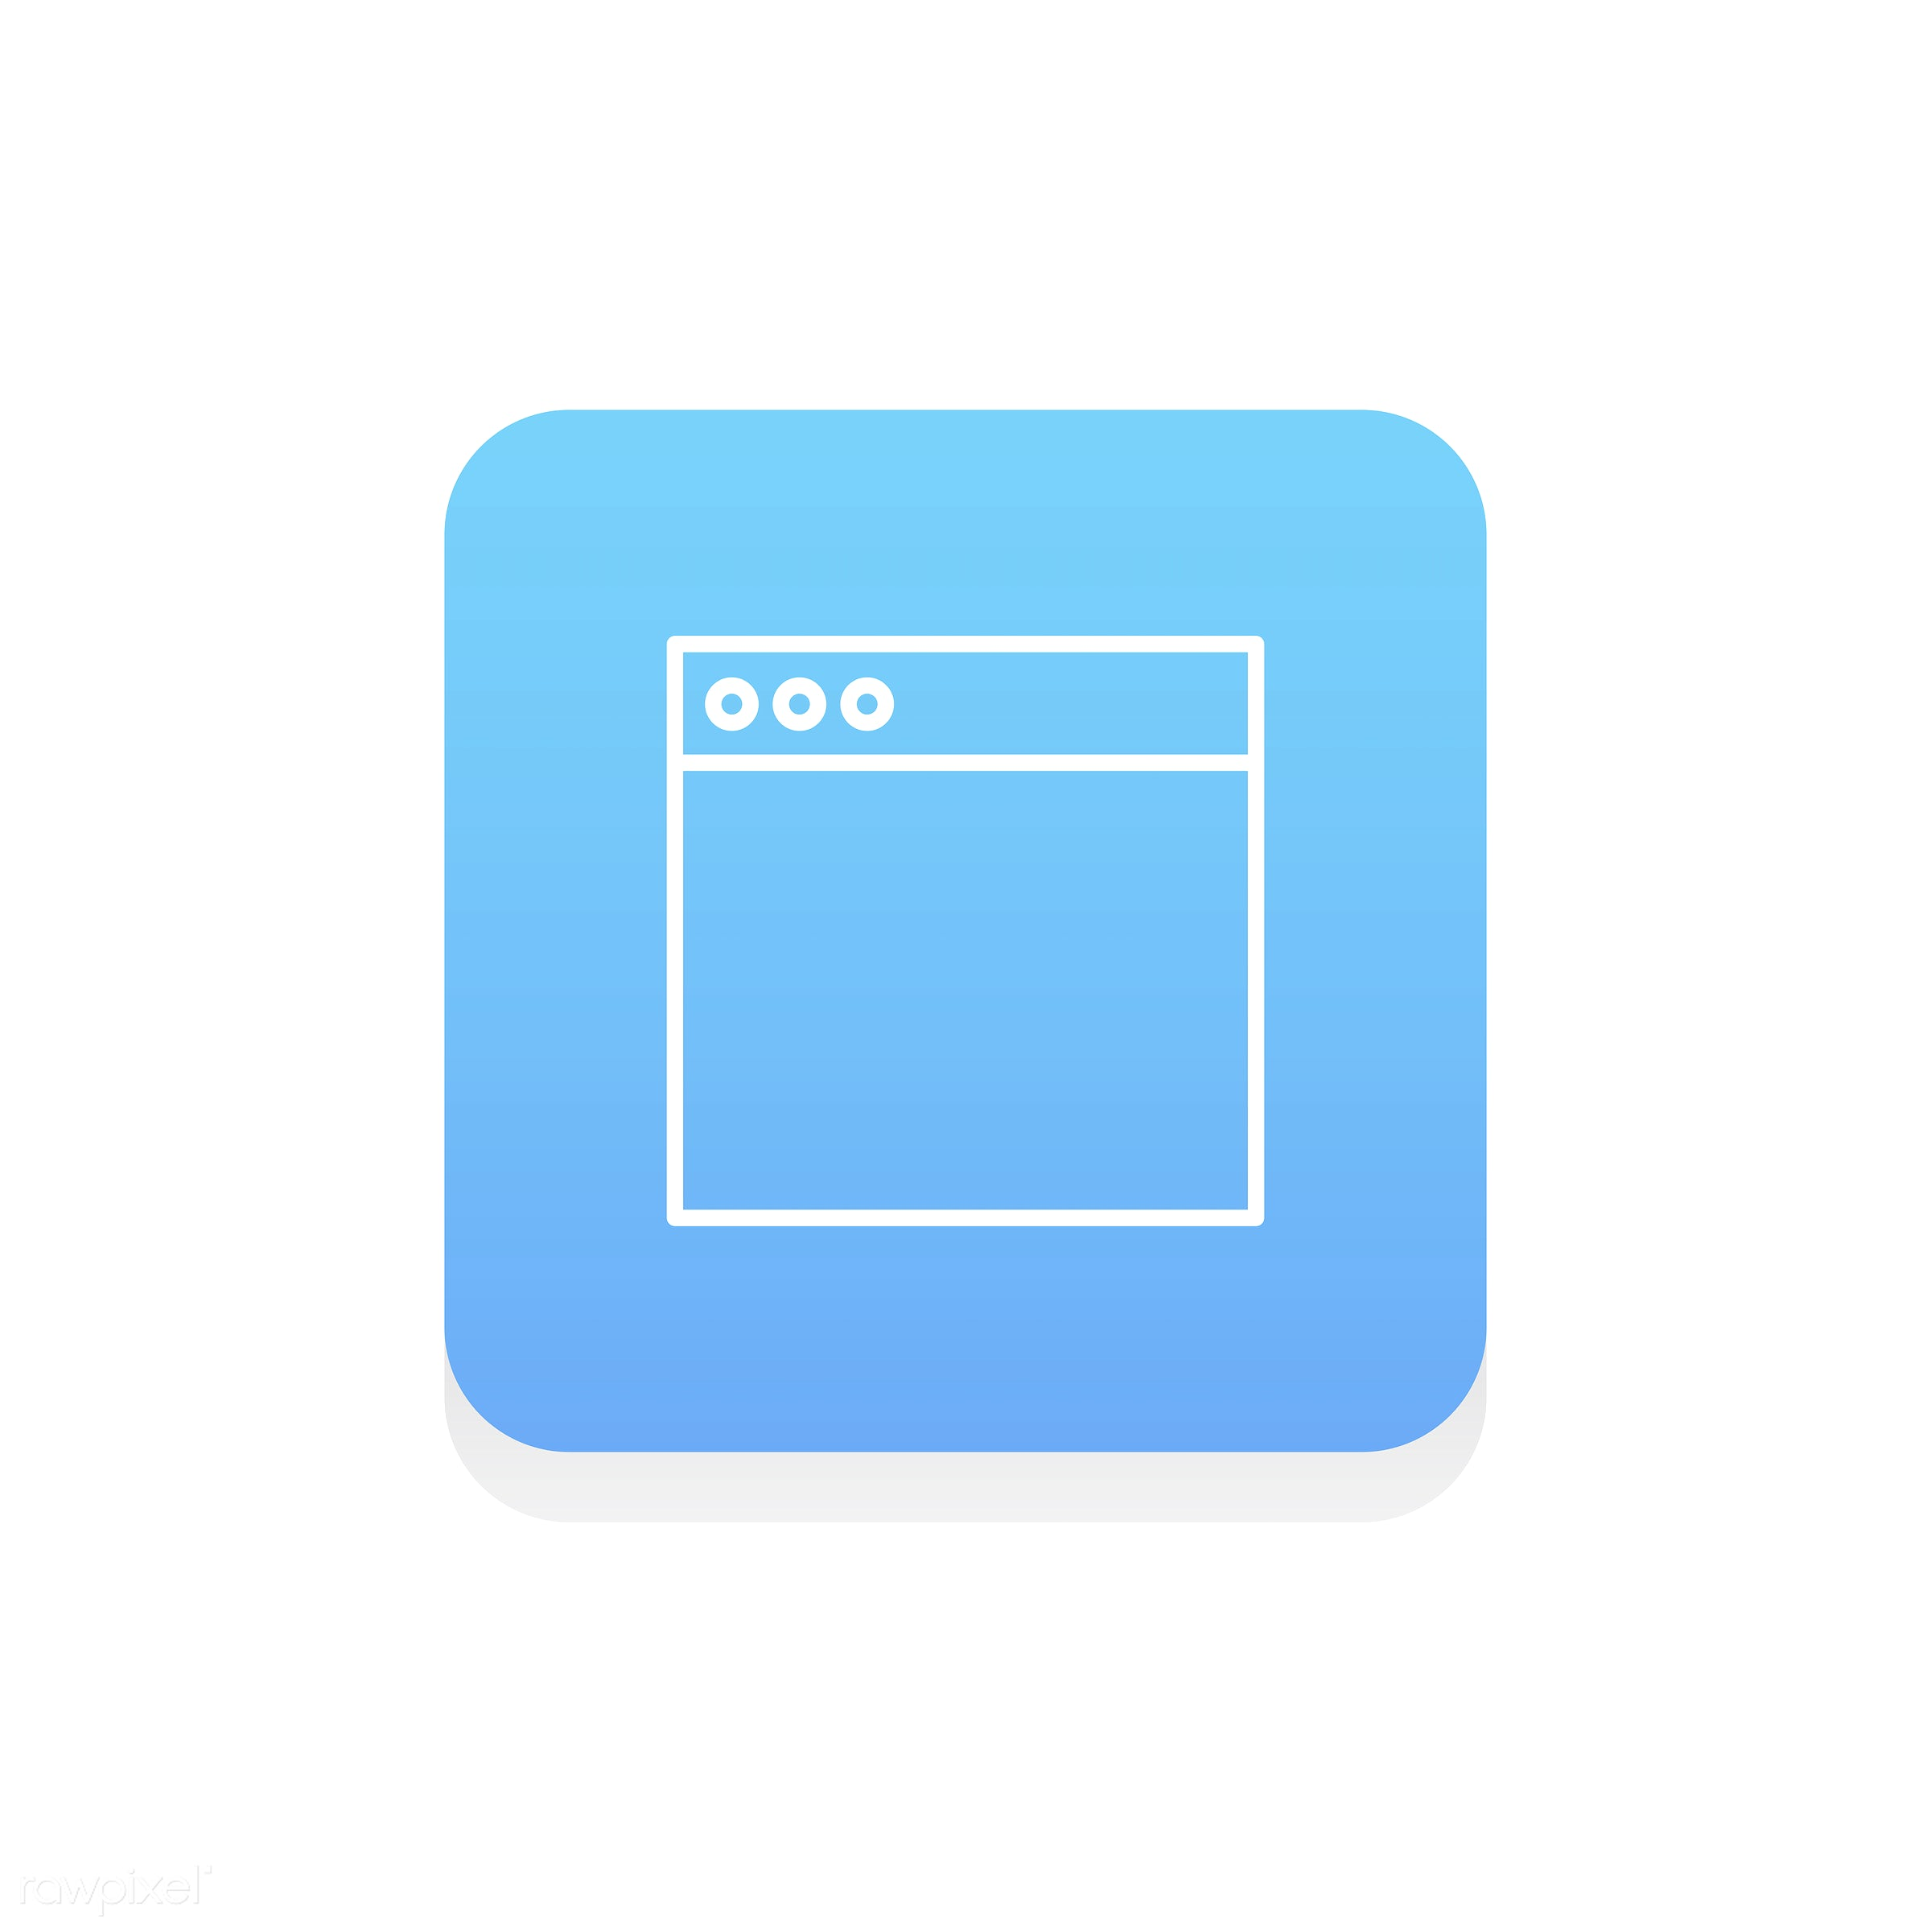 Vector of website layout icon - design, flat, graphic, icon, illustration, isolated, layout, program, style, symbol, vector...